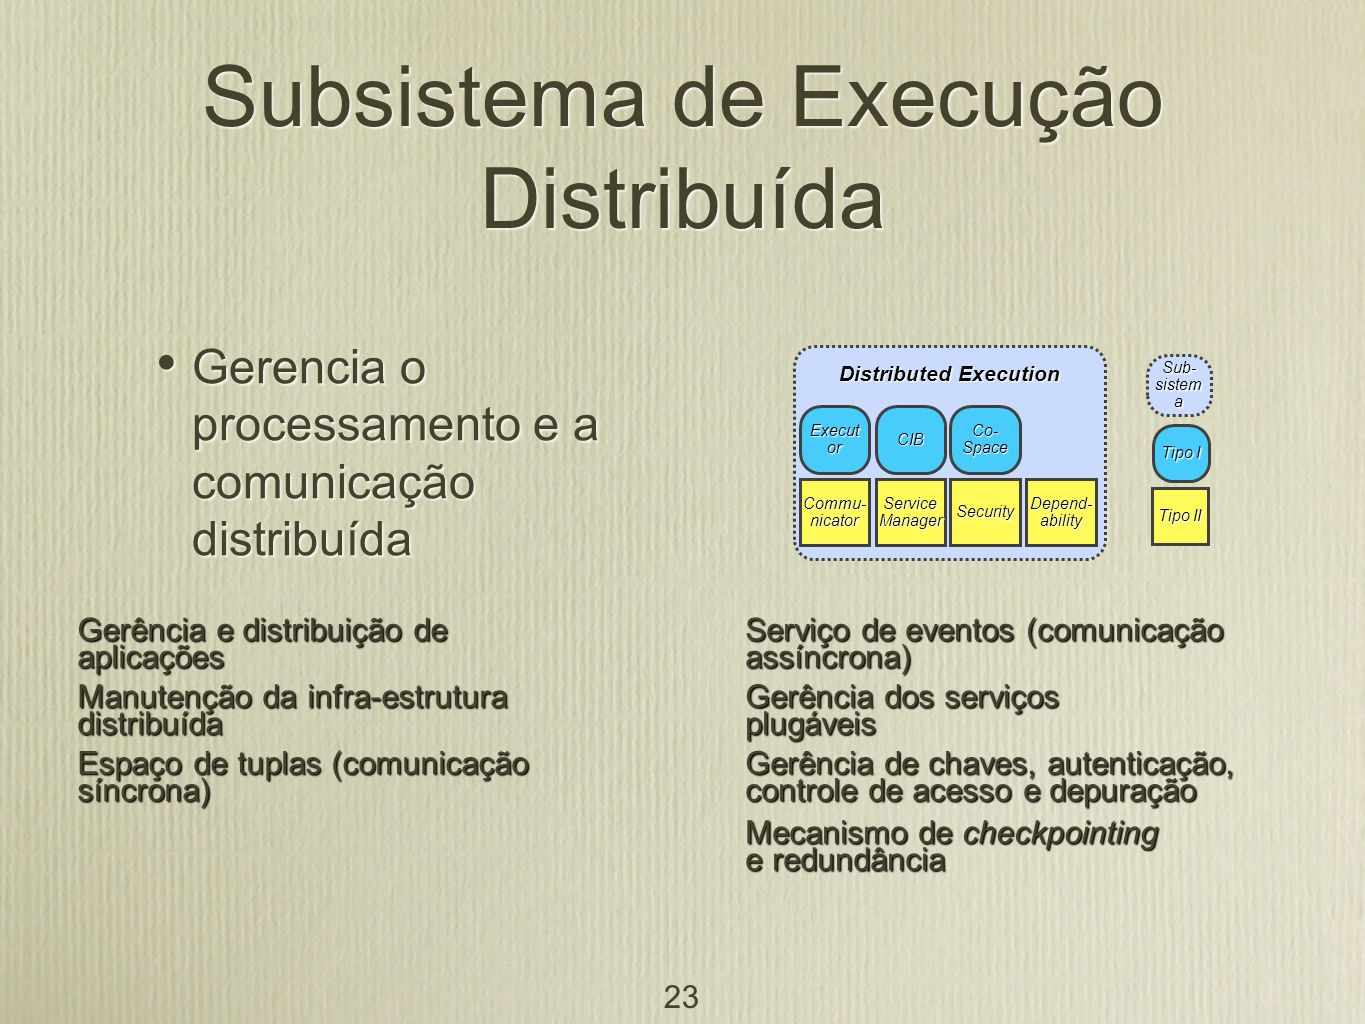 Subsistema de Execução Distribuída 23 Distributed Execution Execut or CIB Commu- nicator Co- Space Service Manager Security Depend- ability Tipo I Tip